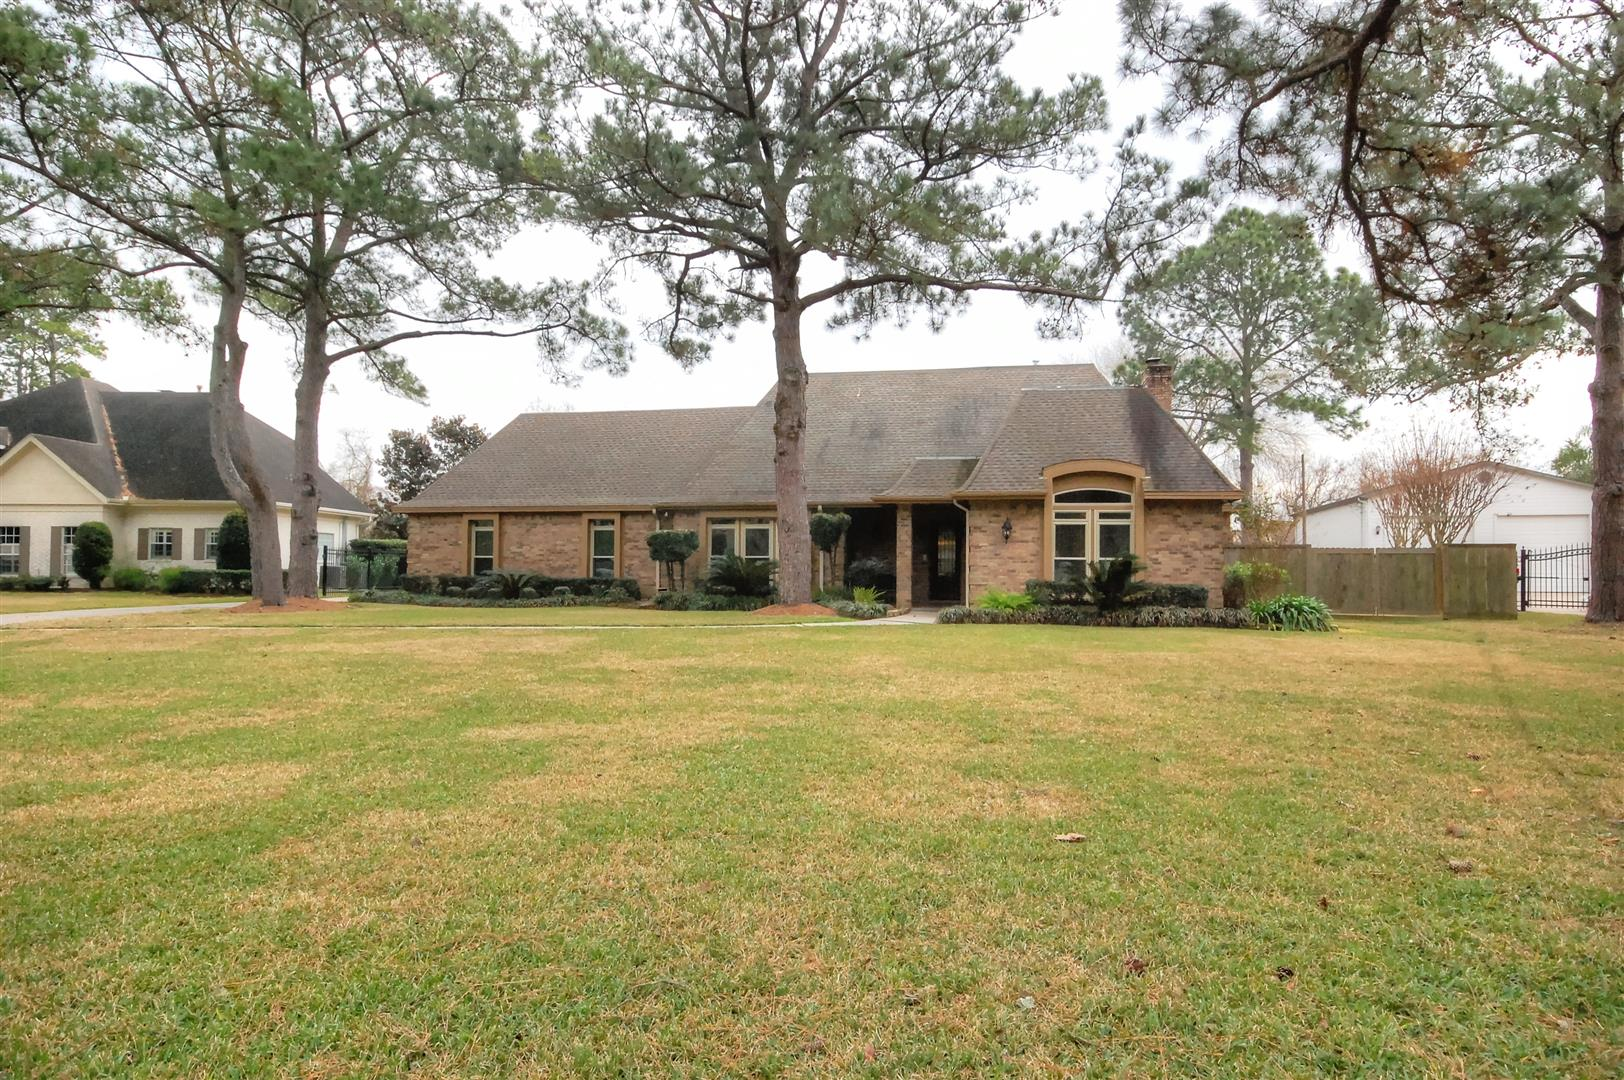 Friendswood Real Estate - Home For Sale